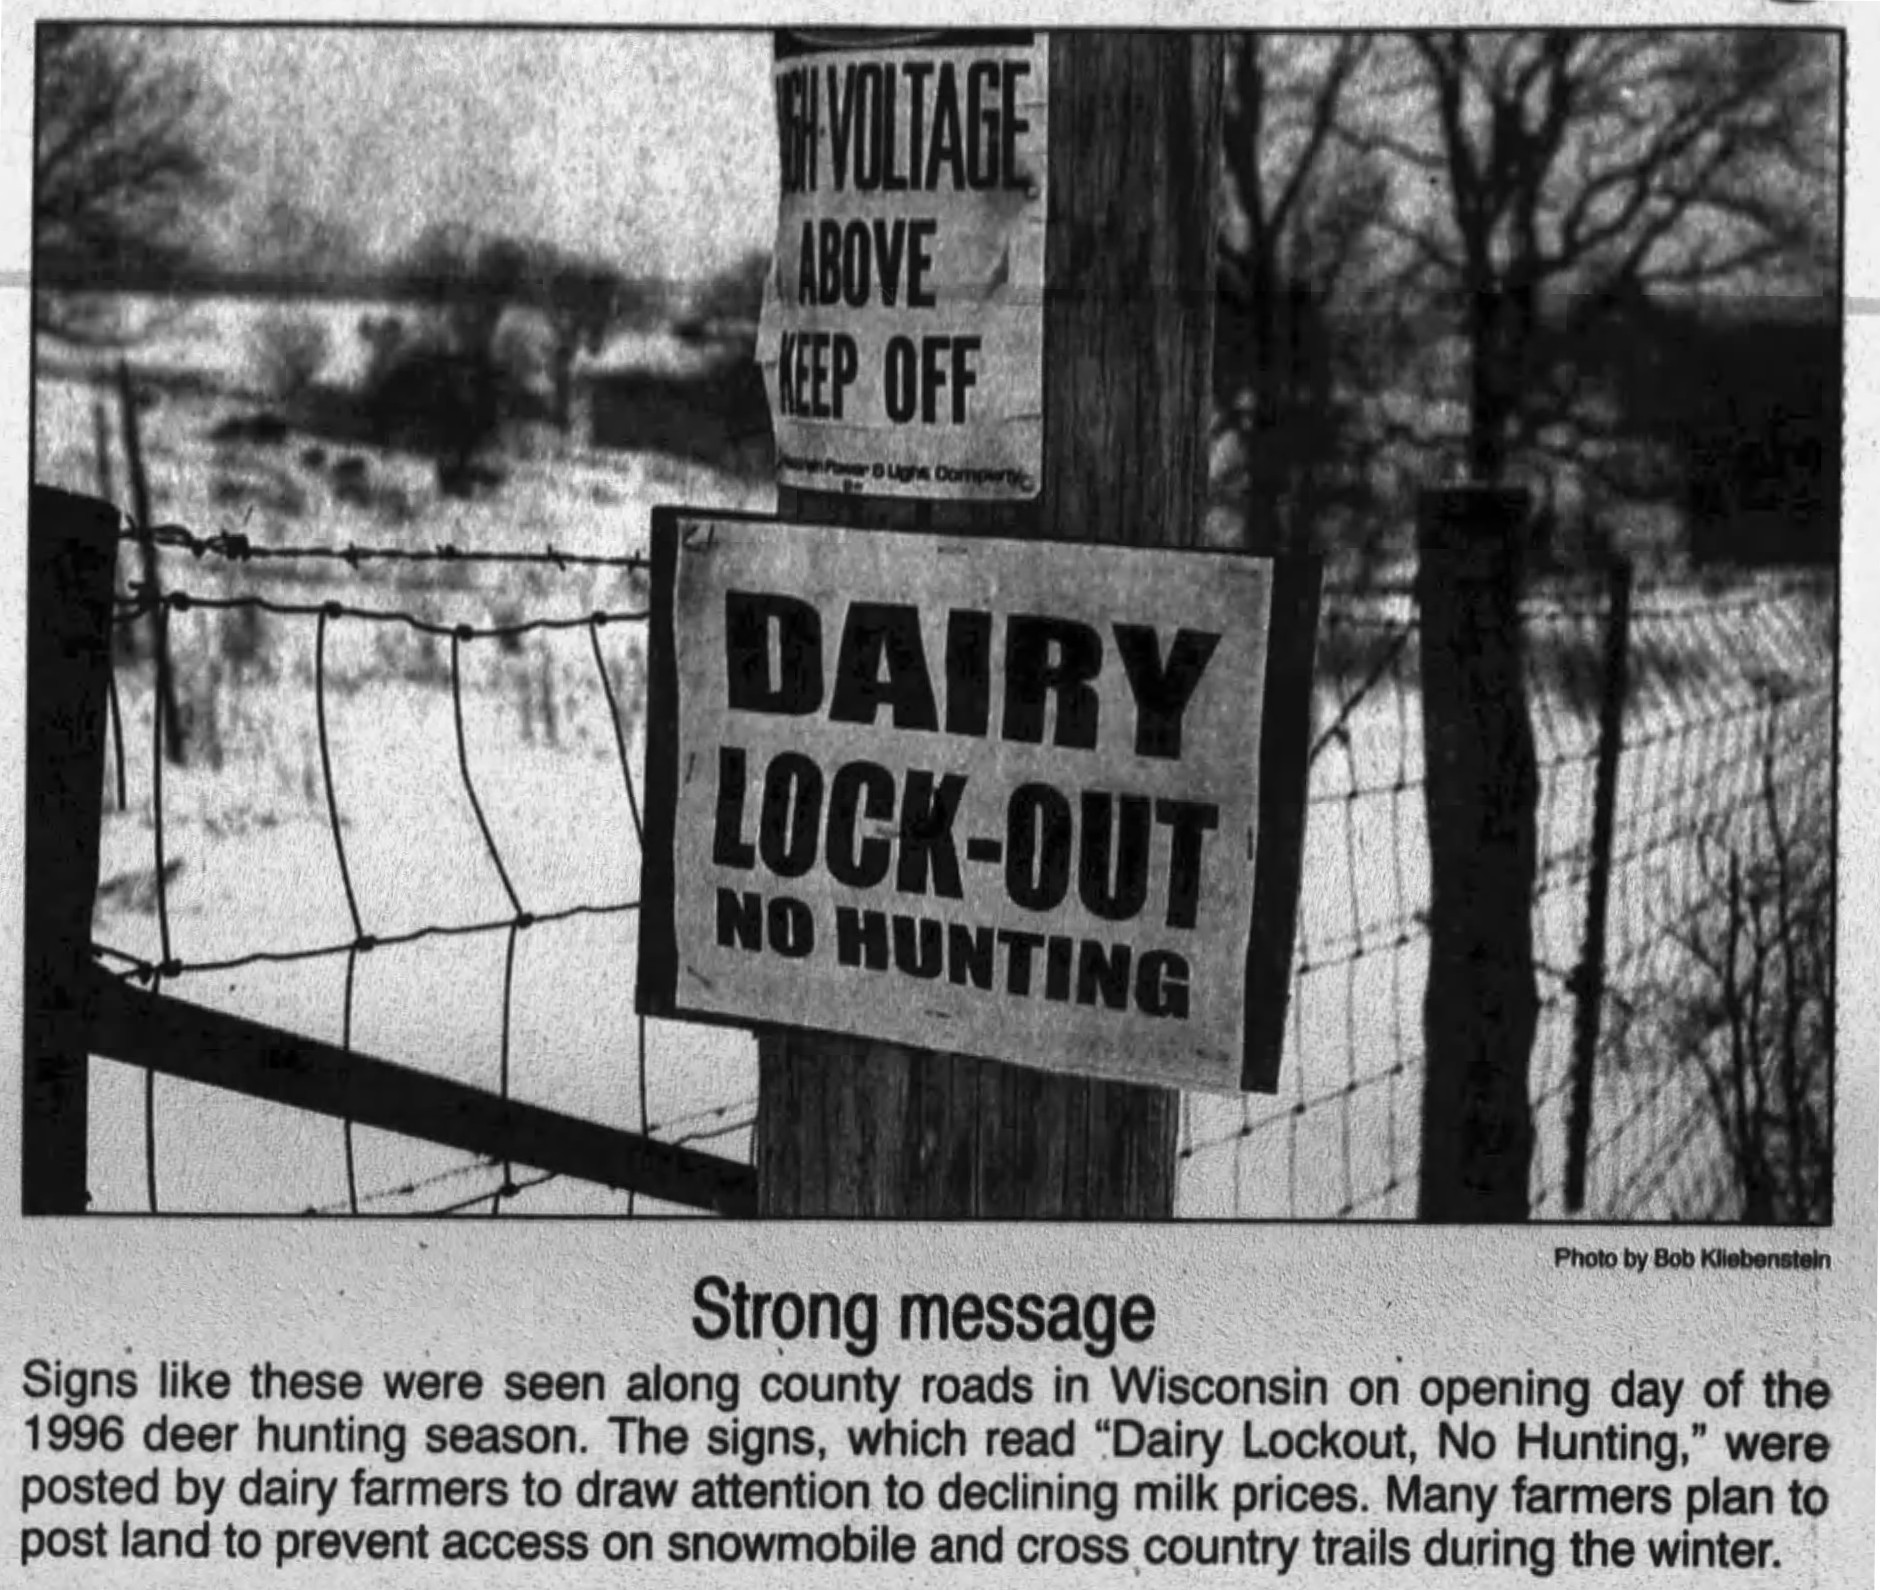 Newspaper clipping of farmer land lockout